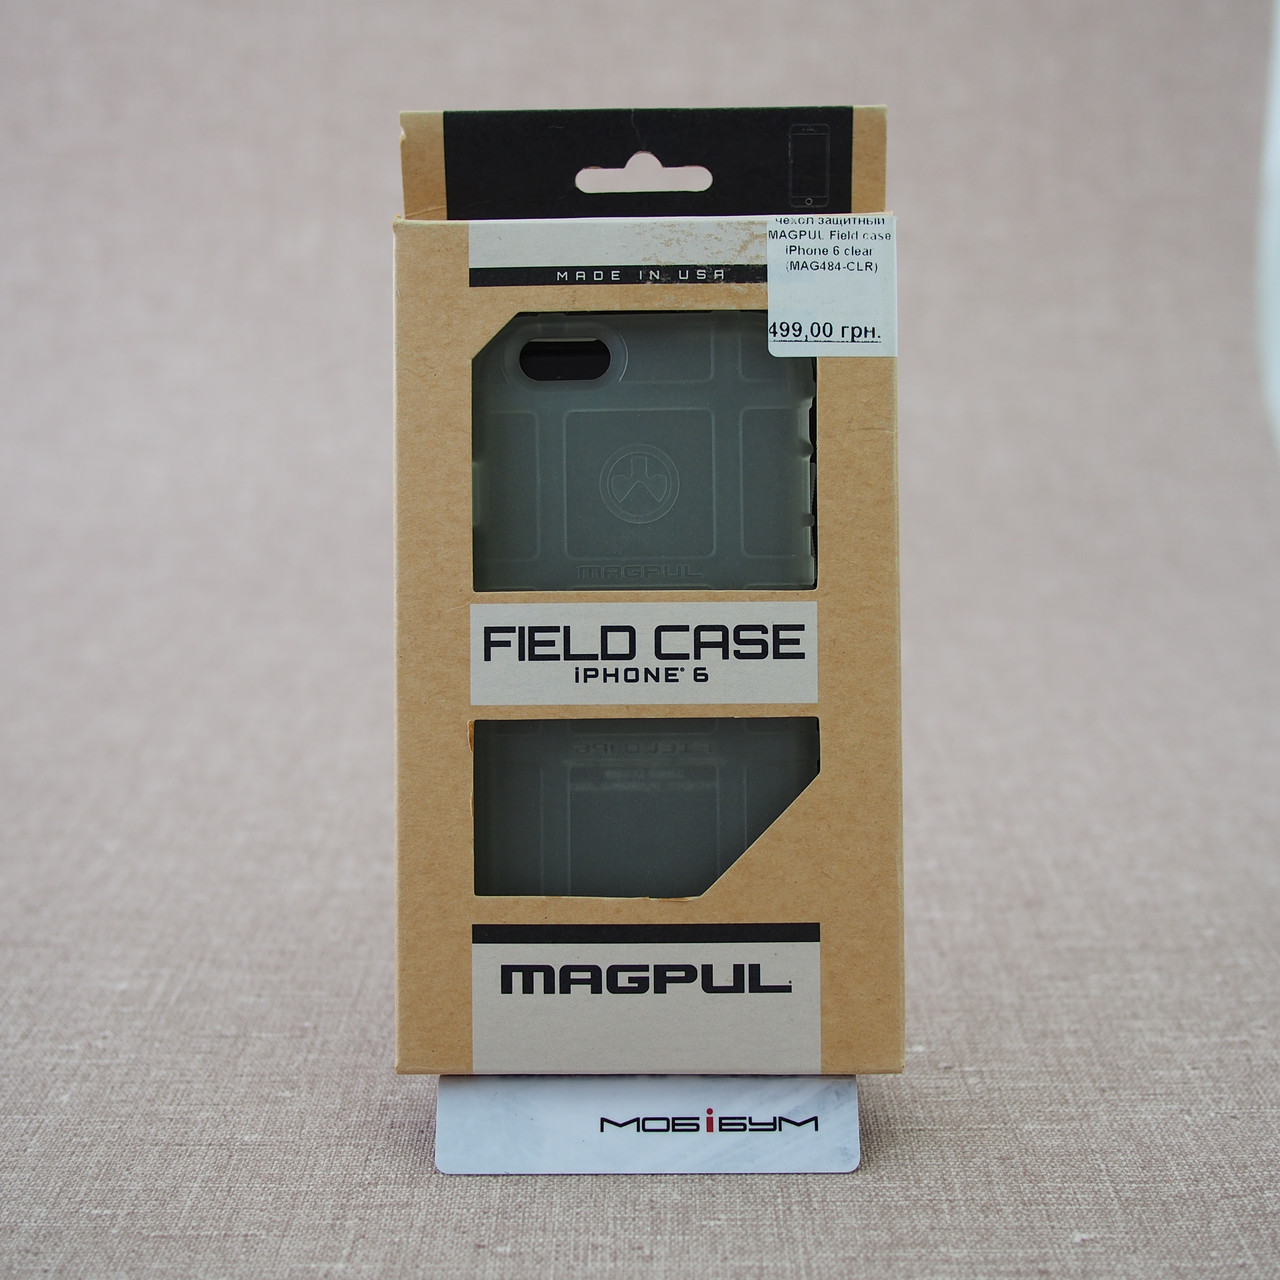 Чехол защитный MAGPUL Field case iPhone 6 clear (MAG484-CLR) EAN/UPC: 840815100010